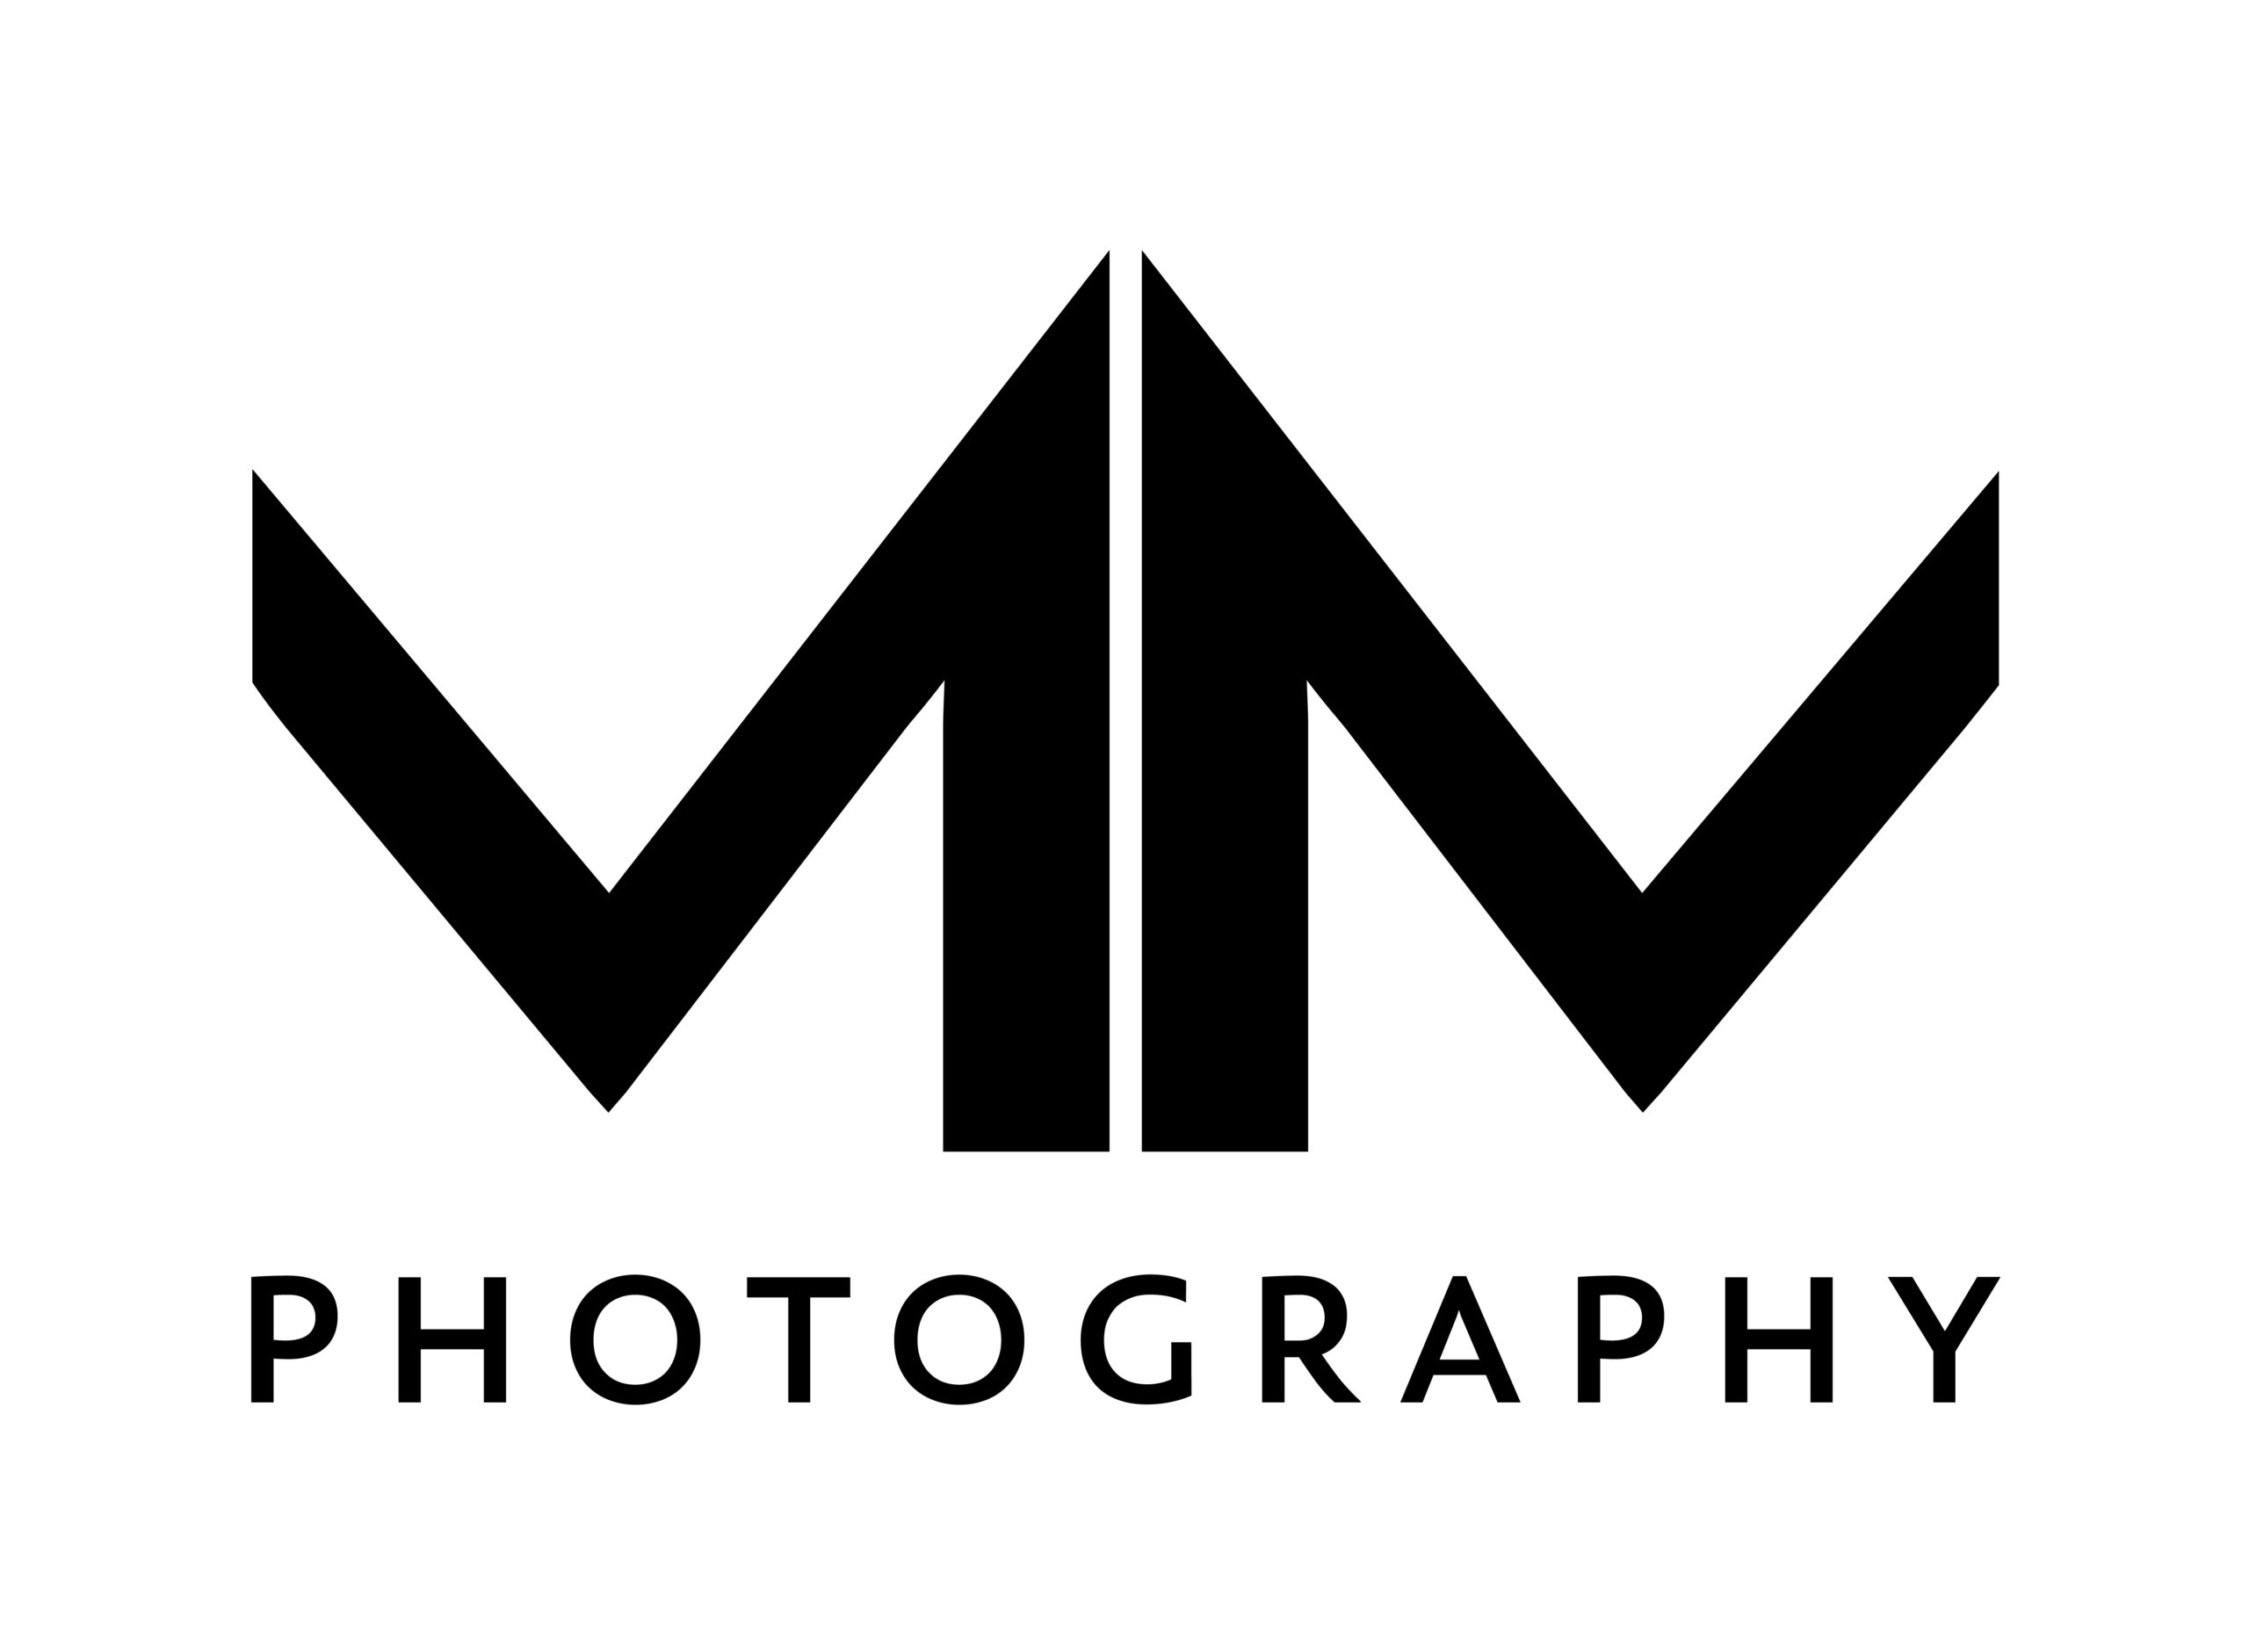 Marvin Manke Photography